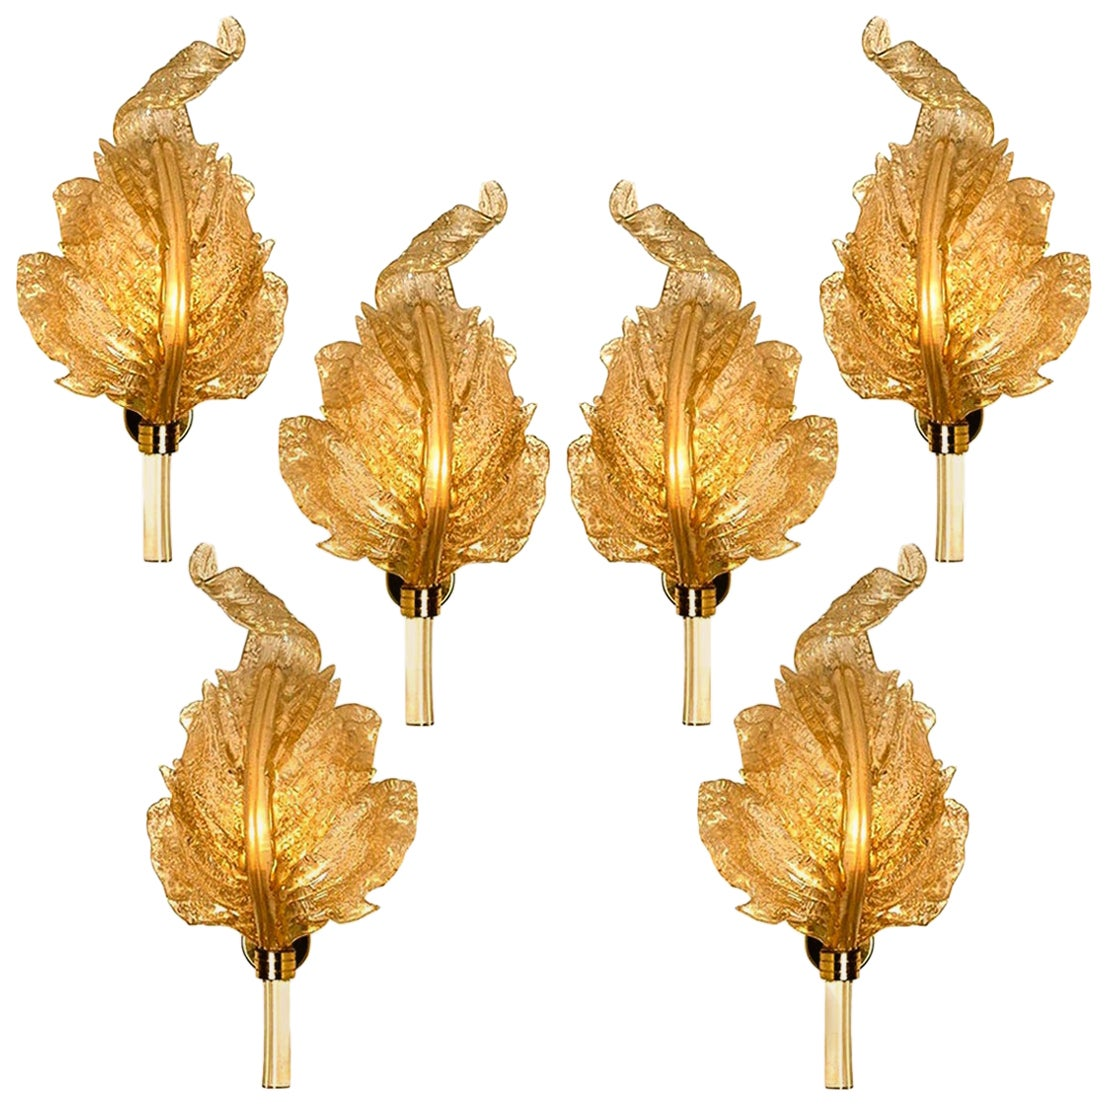 1 of the 6 Large Wall Sconces Barovier & Toso Gold Glass Murano, Italy, 1960s